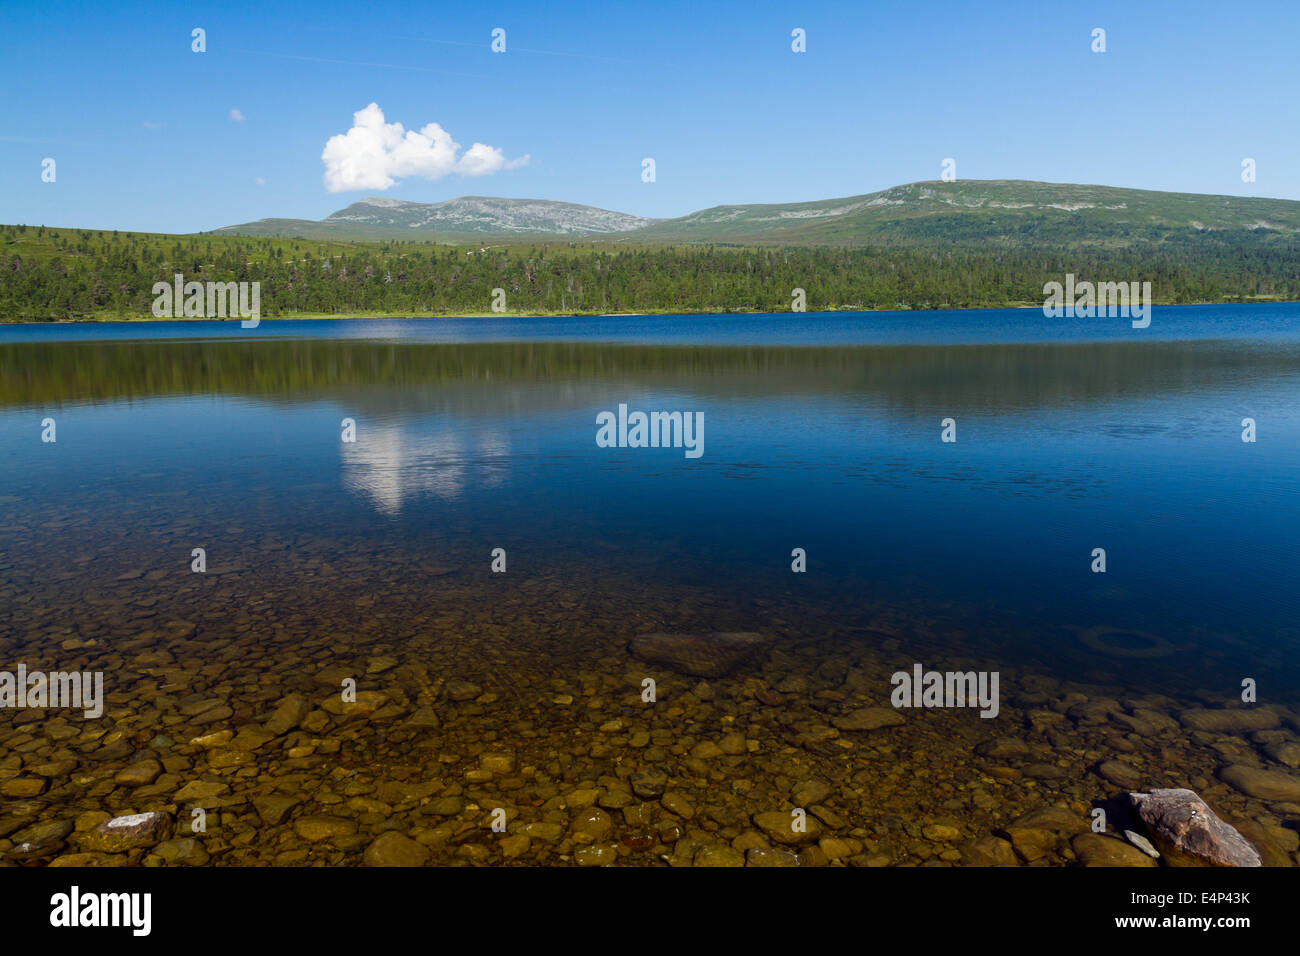 Lake Grövelsjön, situated in the Swedish and Norwegian mountains. A popular place for hiking and trekking. Stock Photo